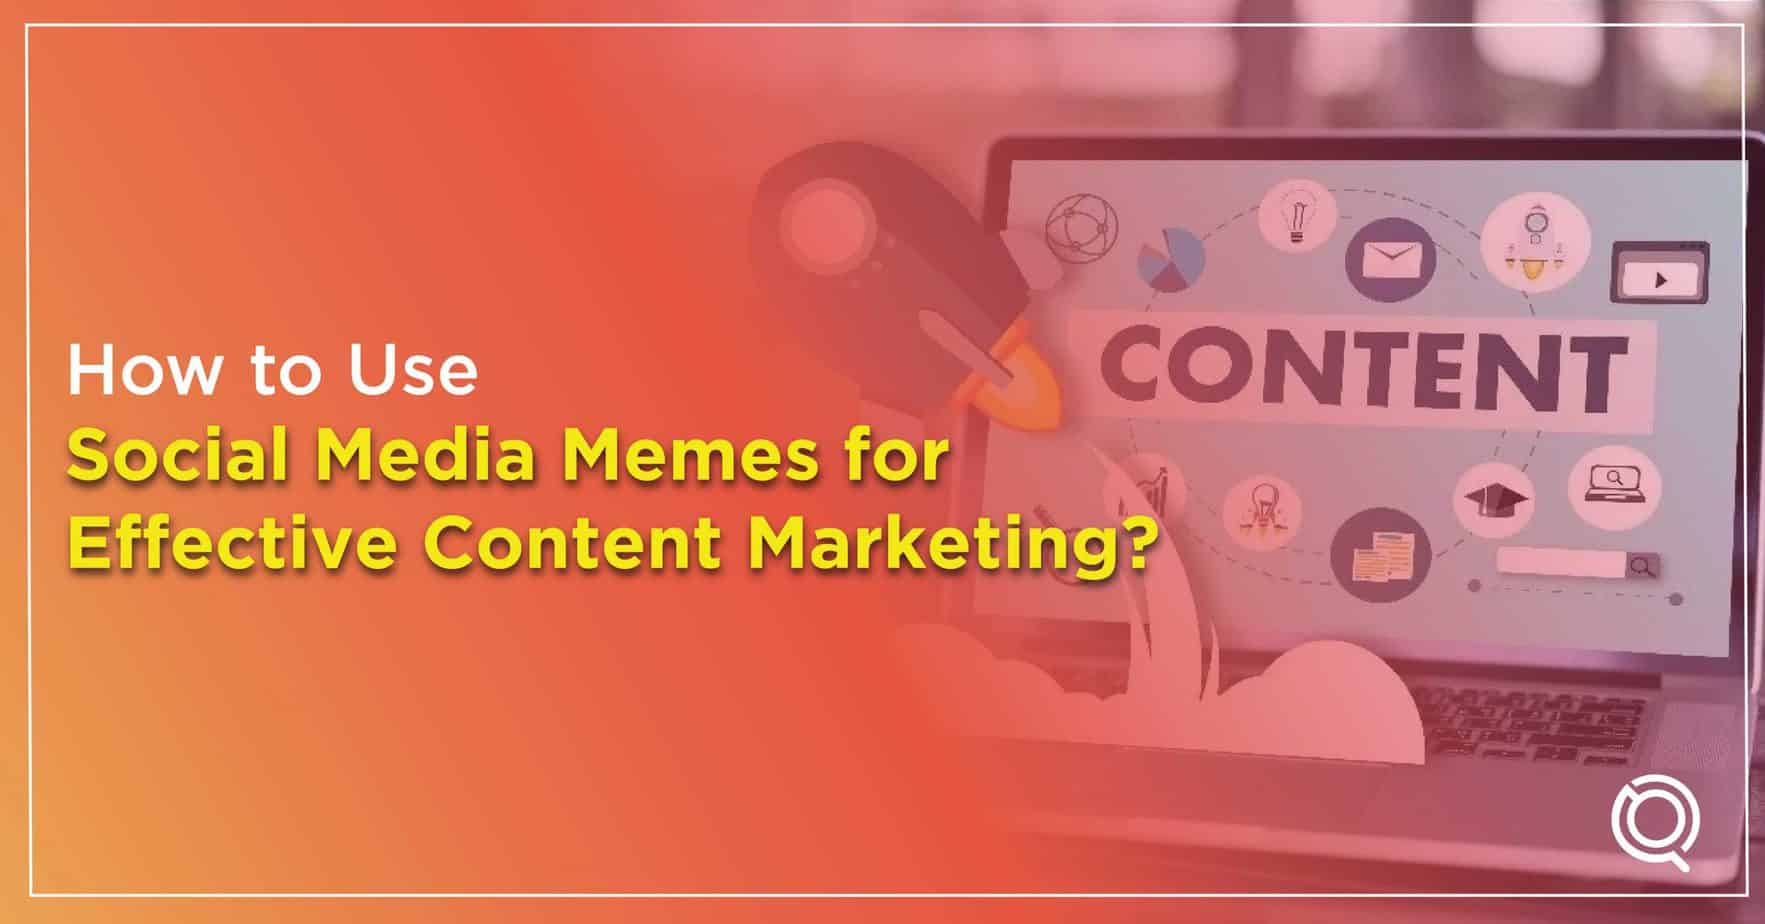 How to Use Social Media Memes for Effective Content Marketing - One Search Pro Digital Marketing Agency Malaysia